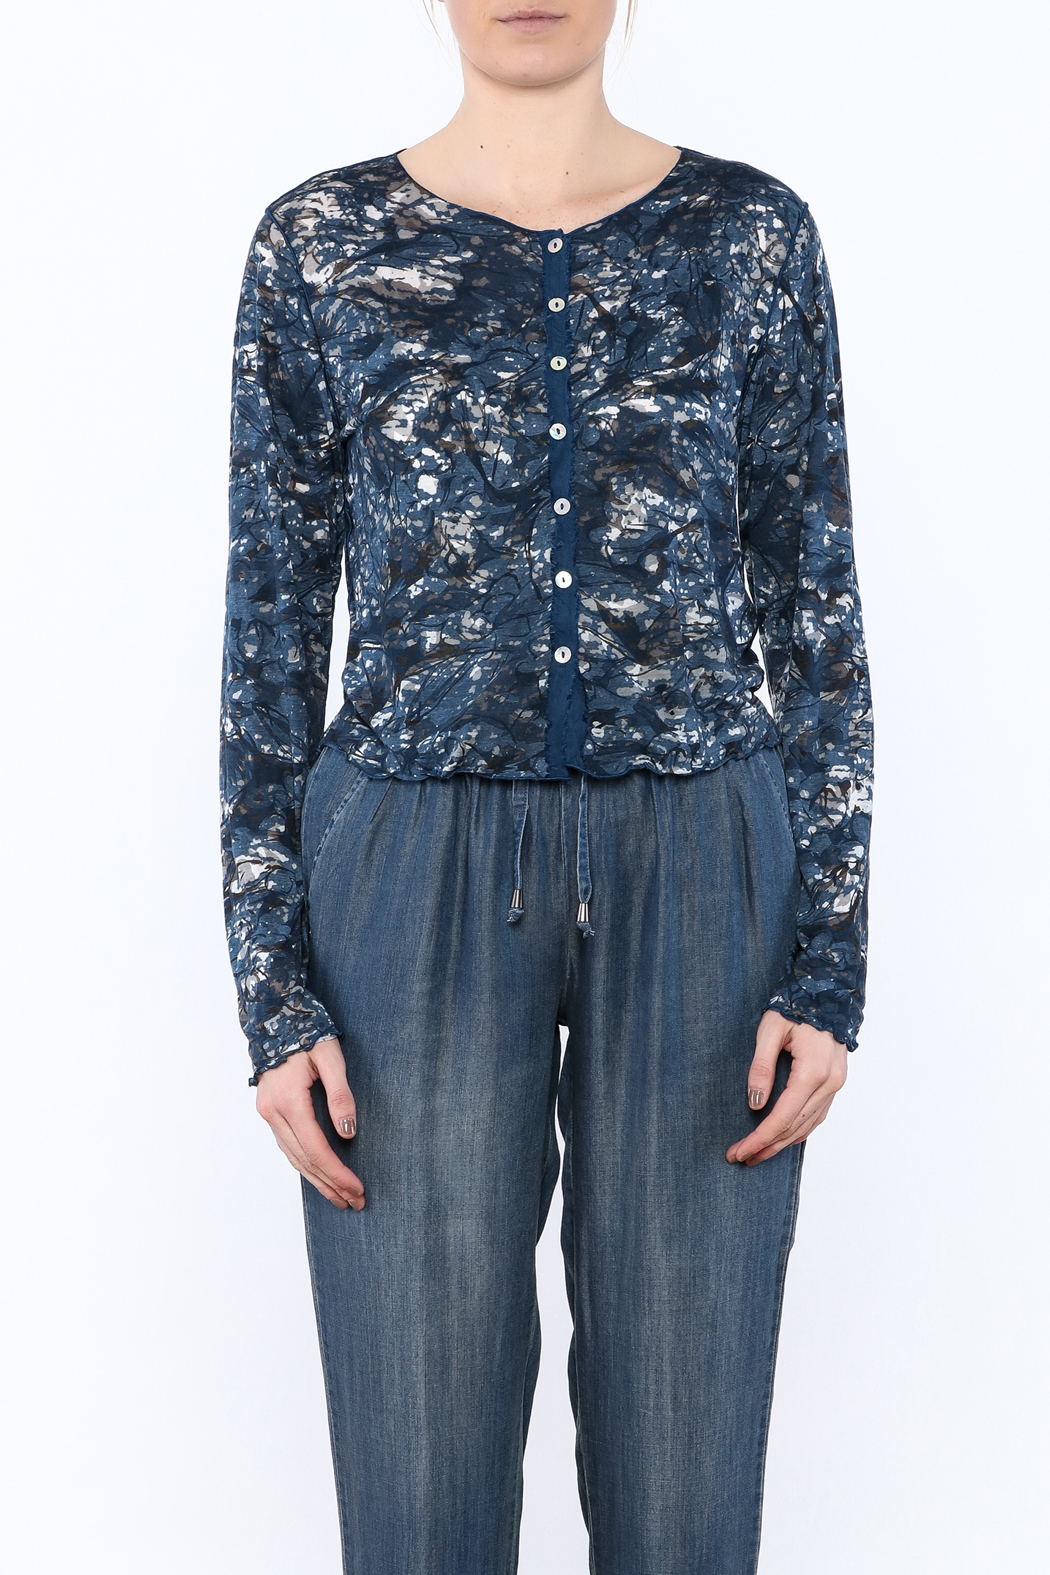 Cut Loose Navy Button Down Cardigan - Side Cropped Image